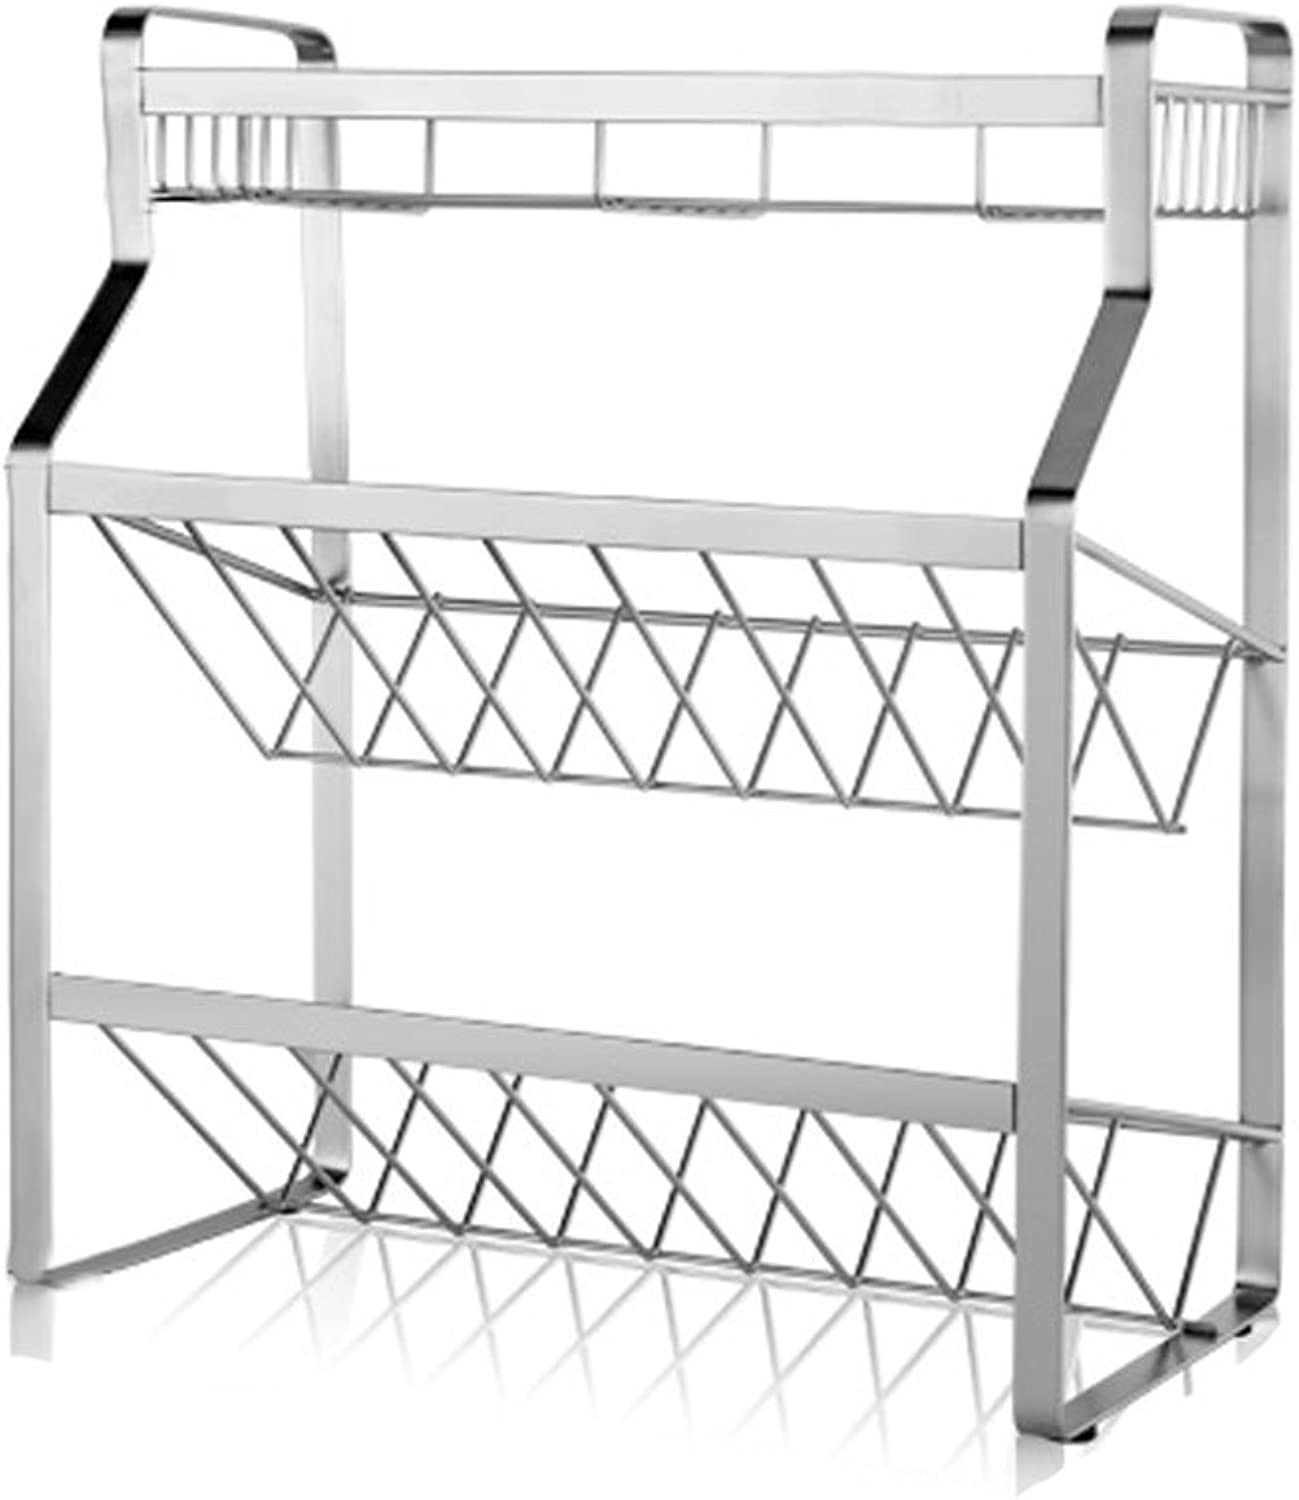 LS Shelf Stainless Steel Kitchen Racks Landing Three Store Oil and Salt Sauce Vinegar Supplies Seasoning Shelf Modern Retro Style Fashion Trend Rack